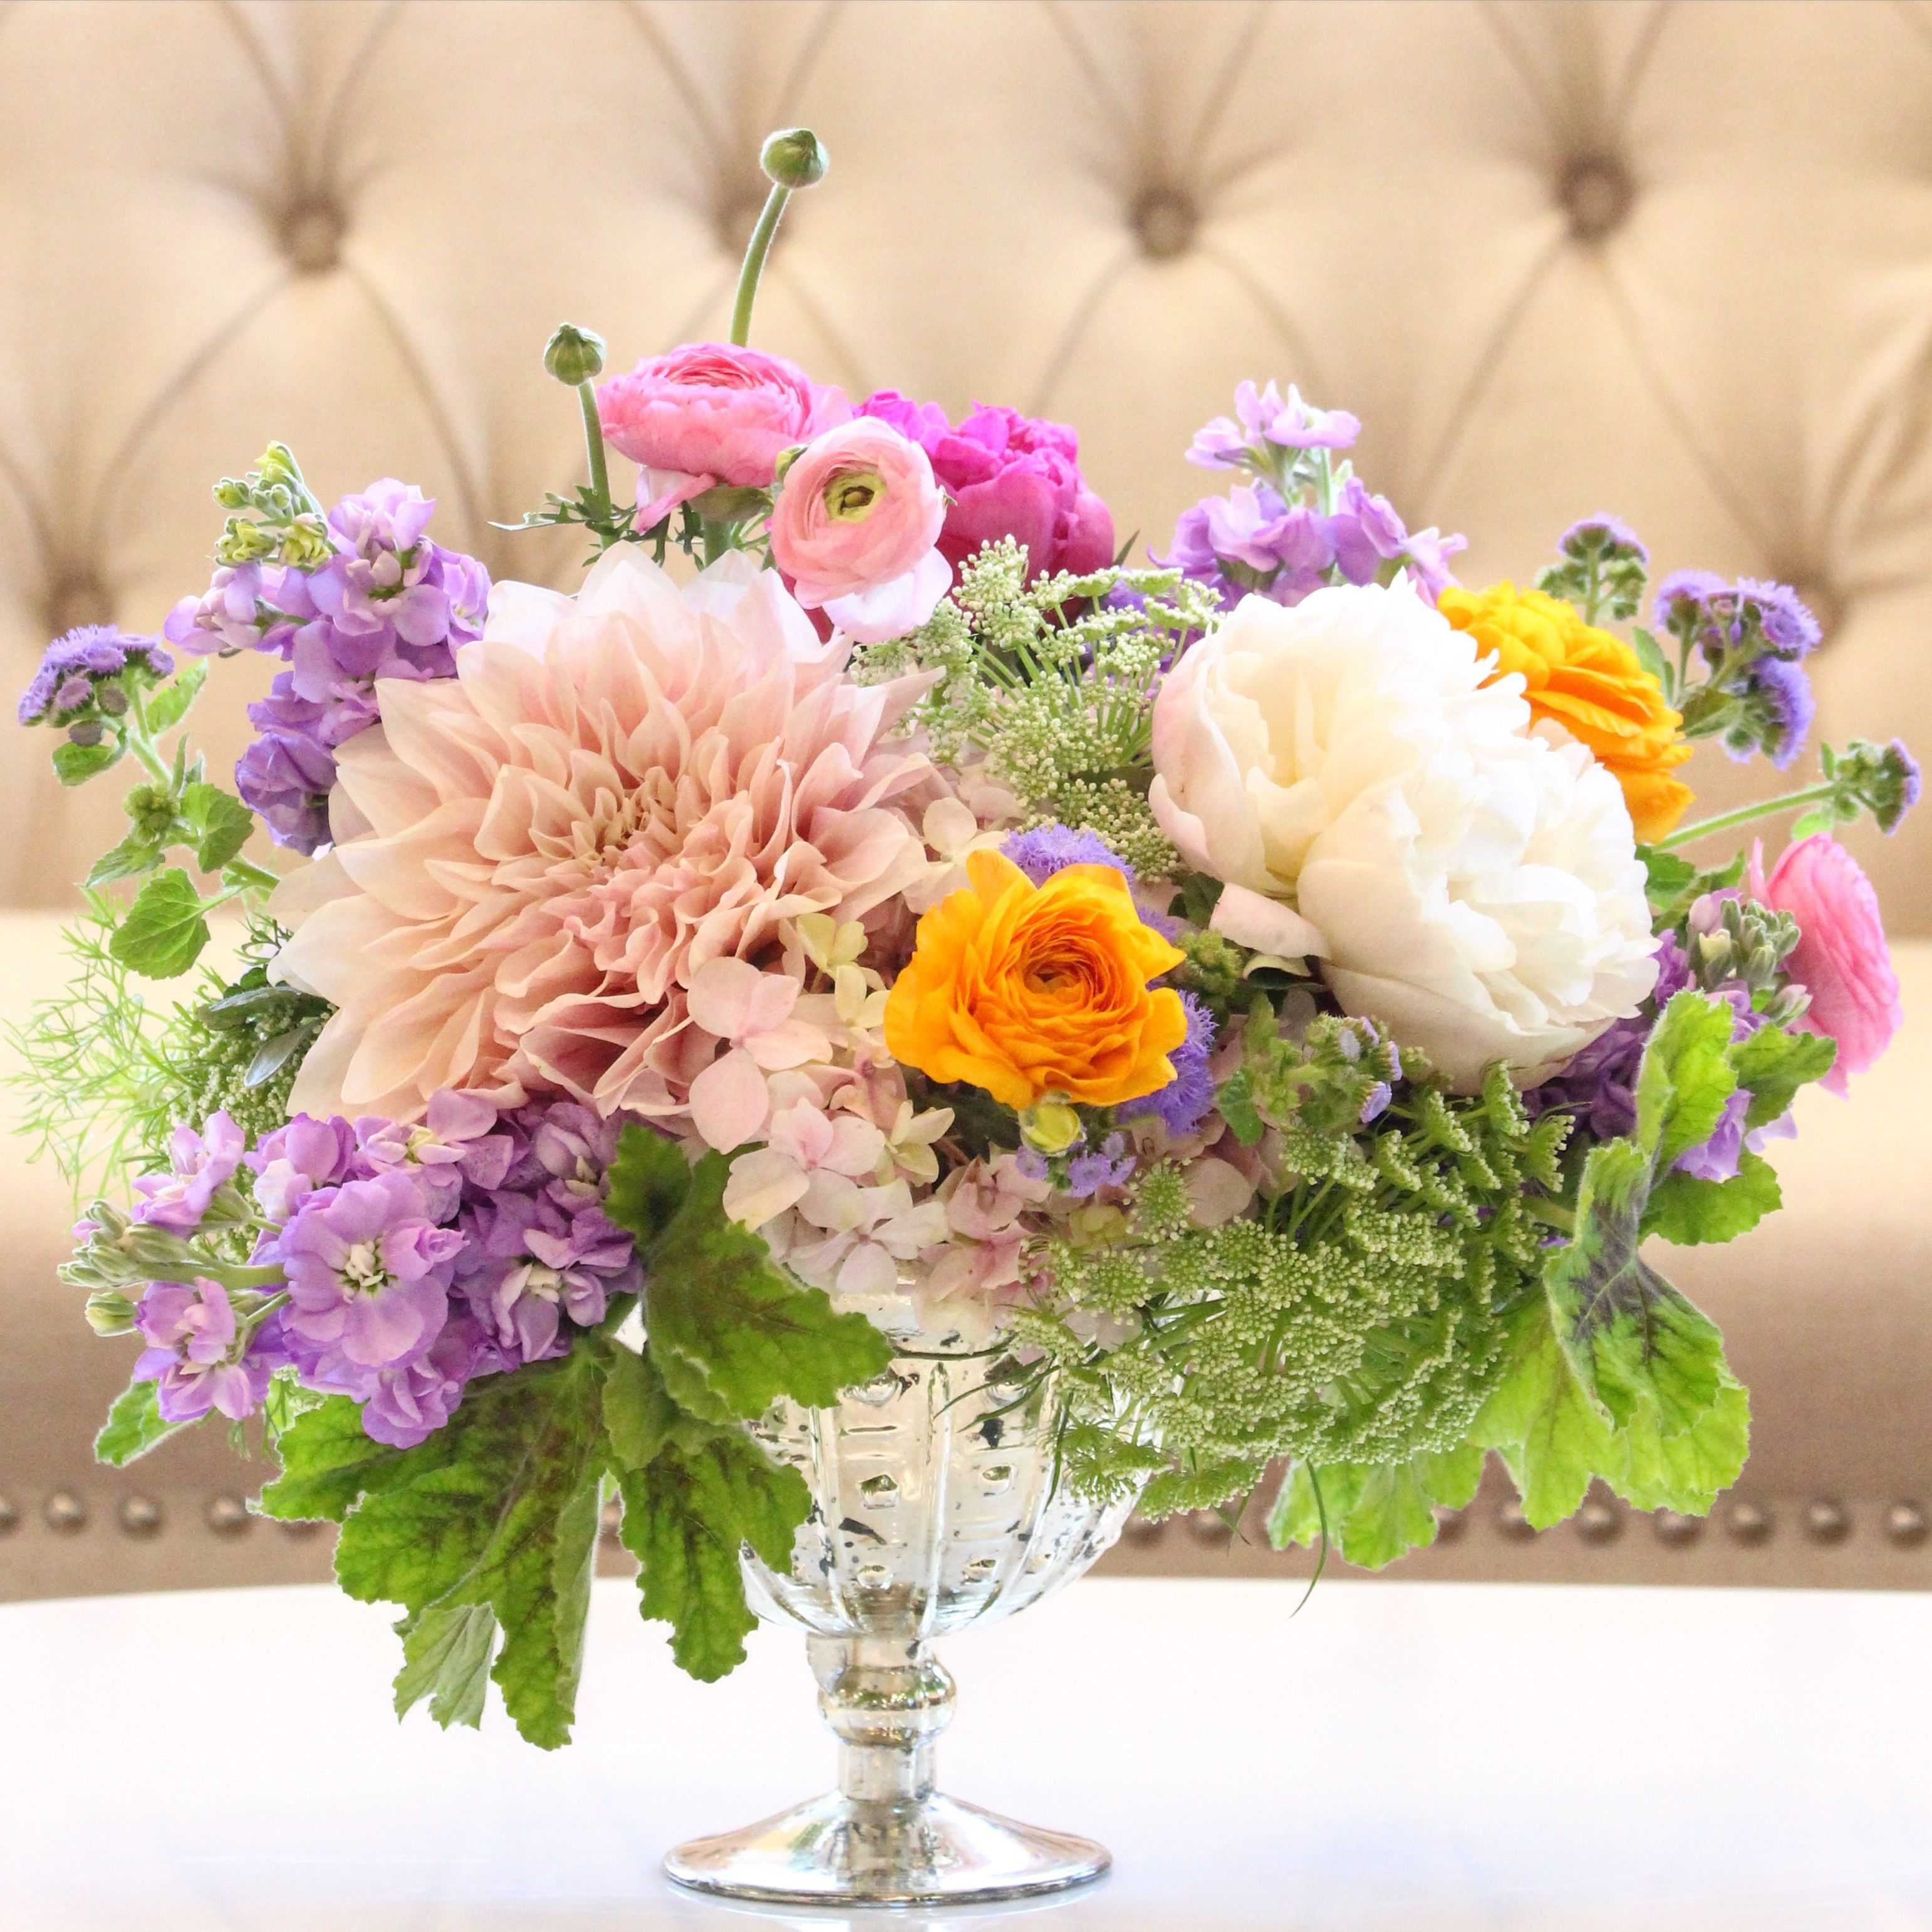 Send the Citrus Blossom bouquet of flowers from MD's